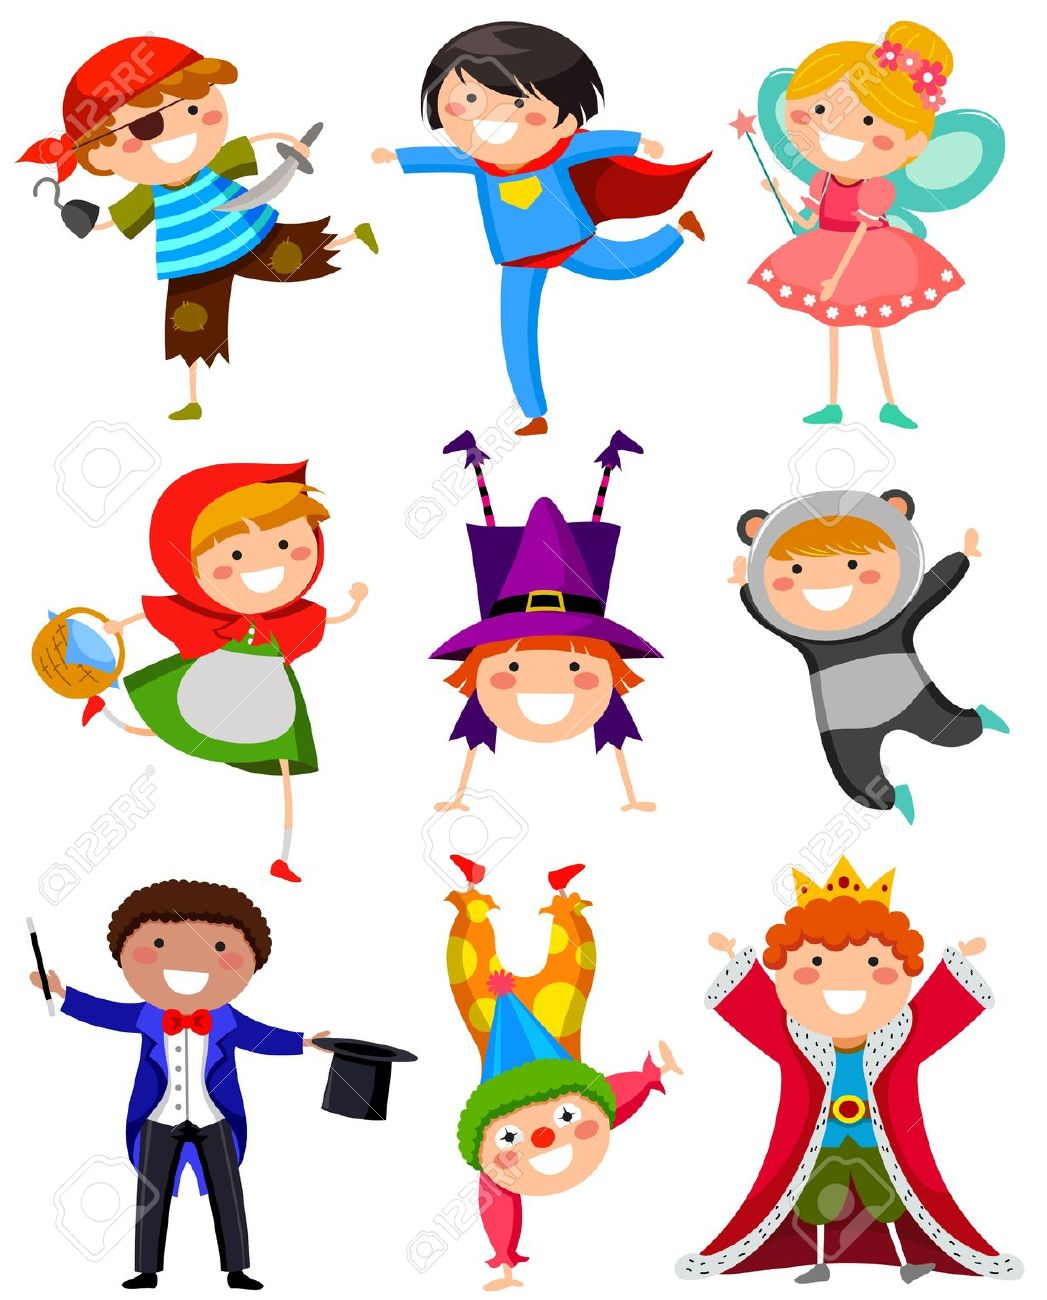 Kids character costumes clipart png free download Kids character costumes clipart - ClipartFest png free download